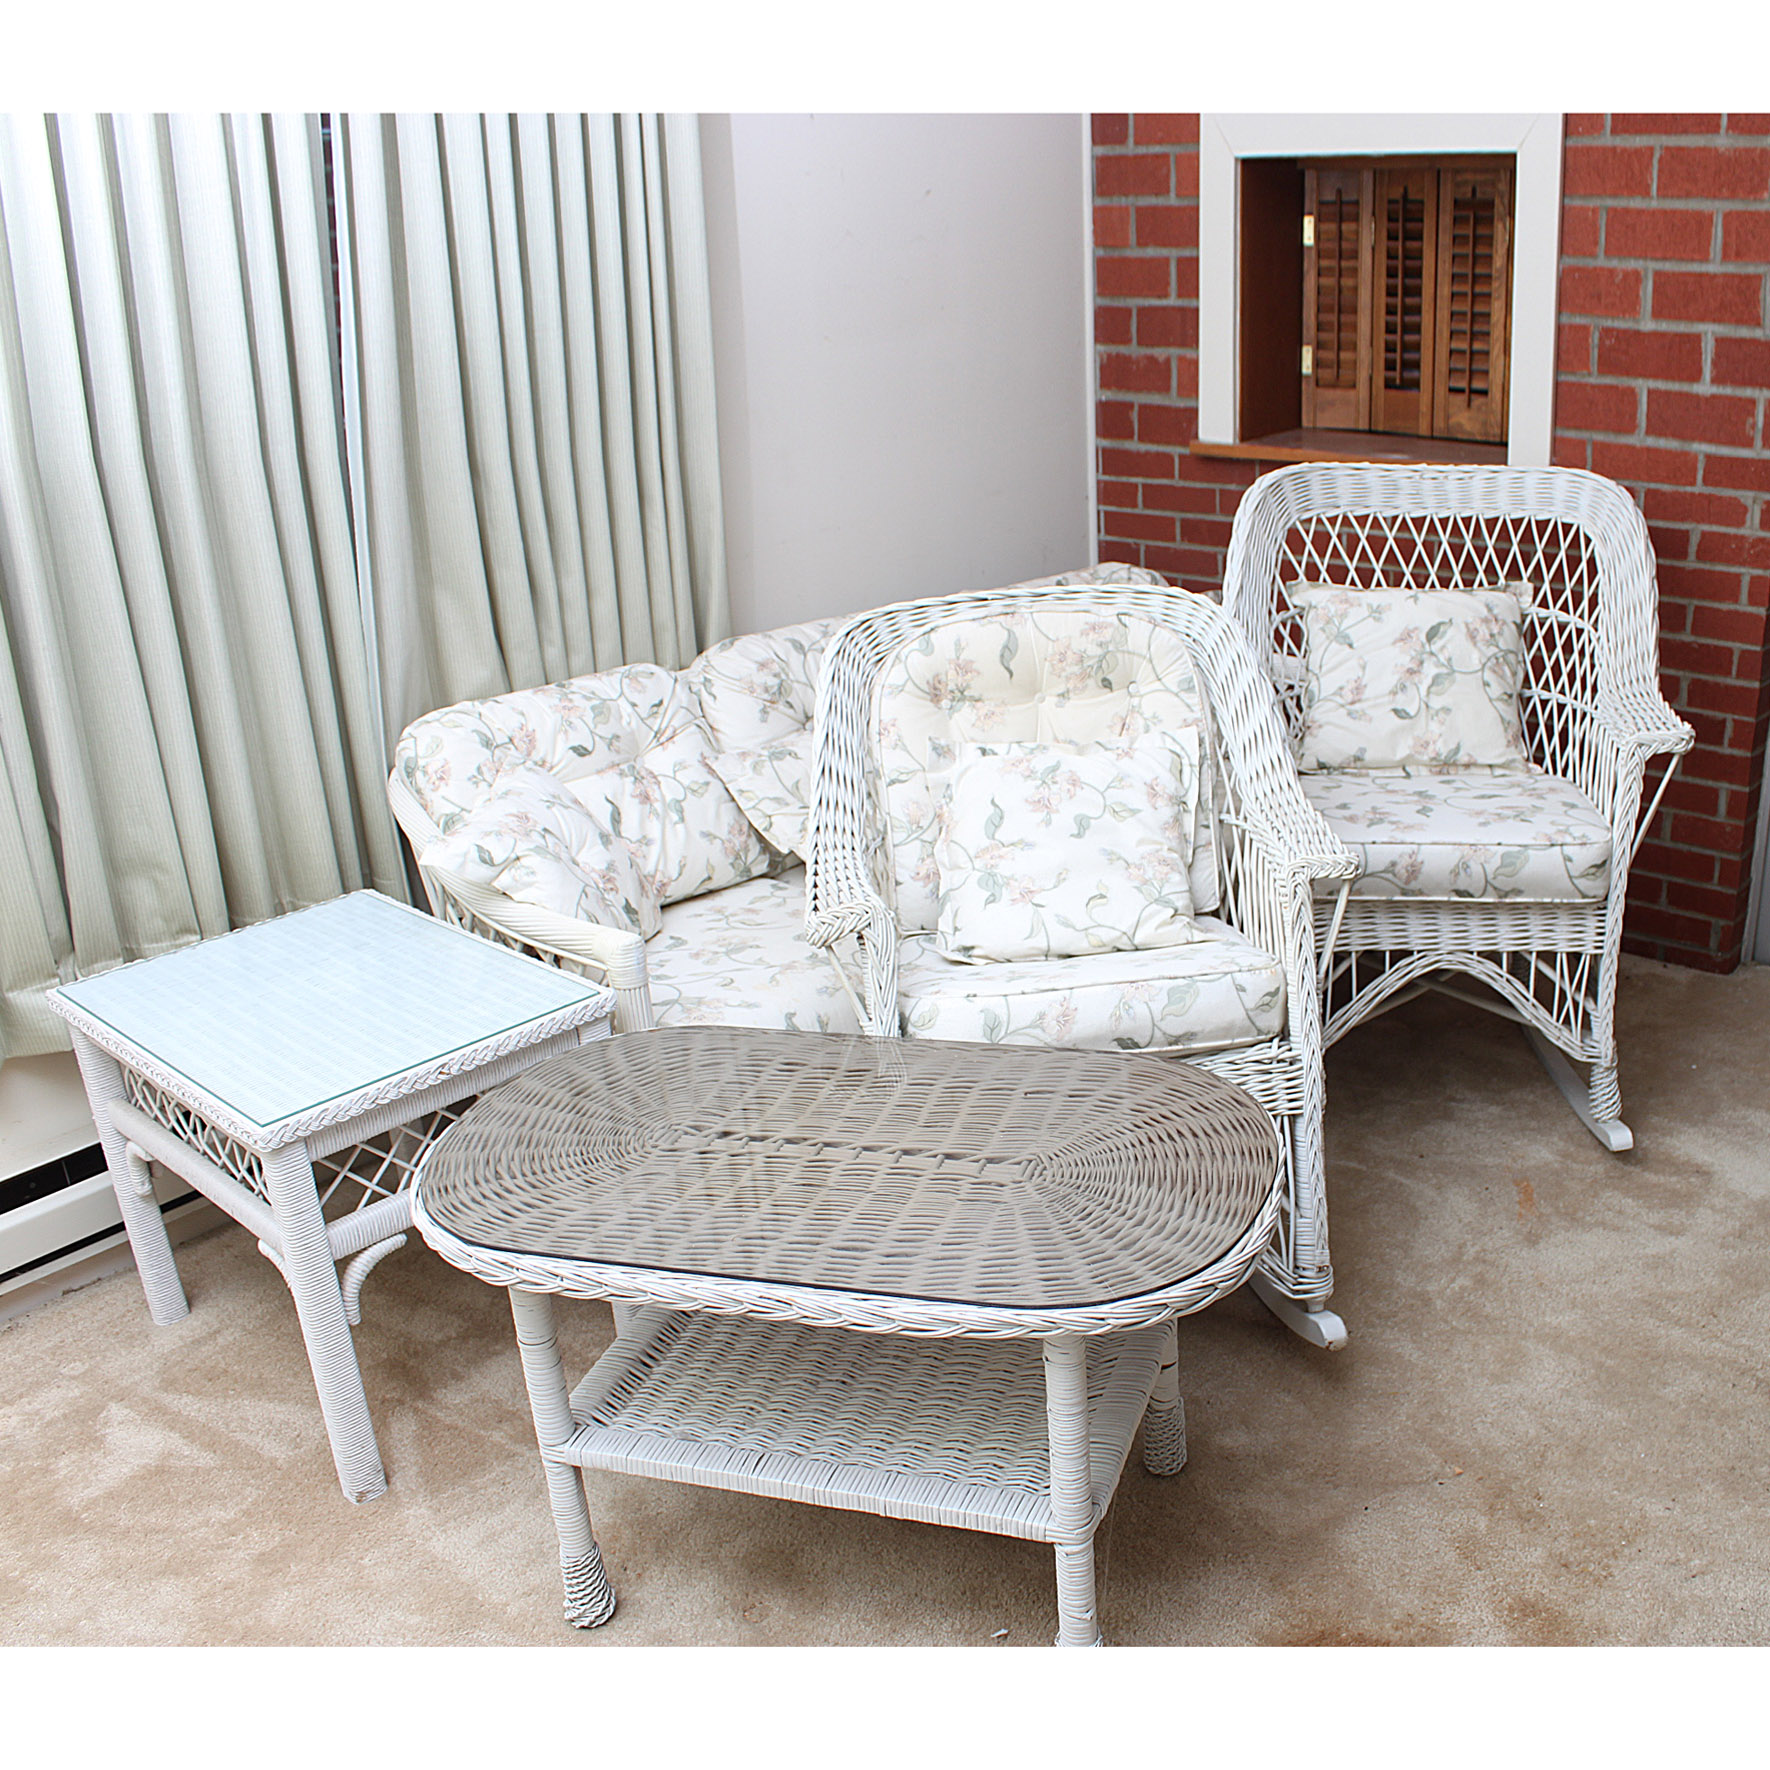 Patio Furniture Auction Outdoor and Garden Decor Auctions in